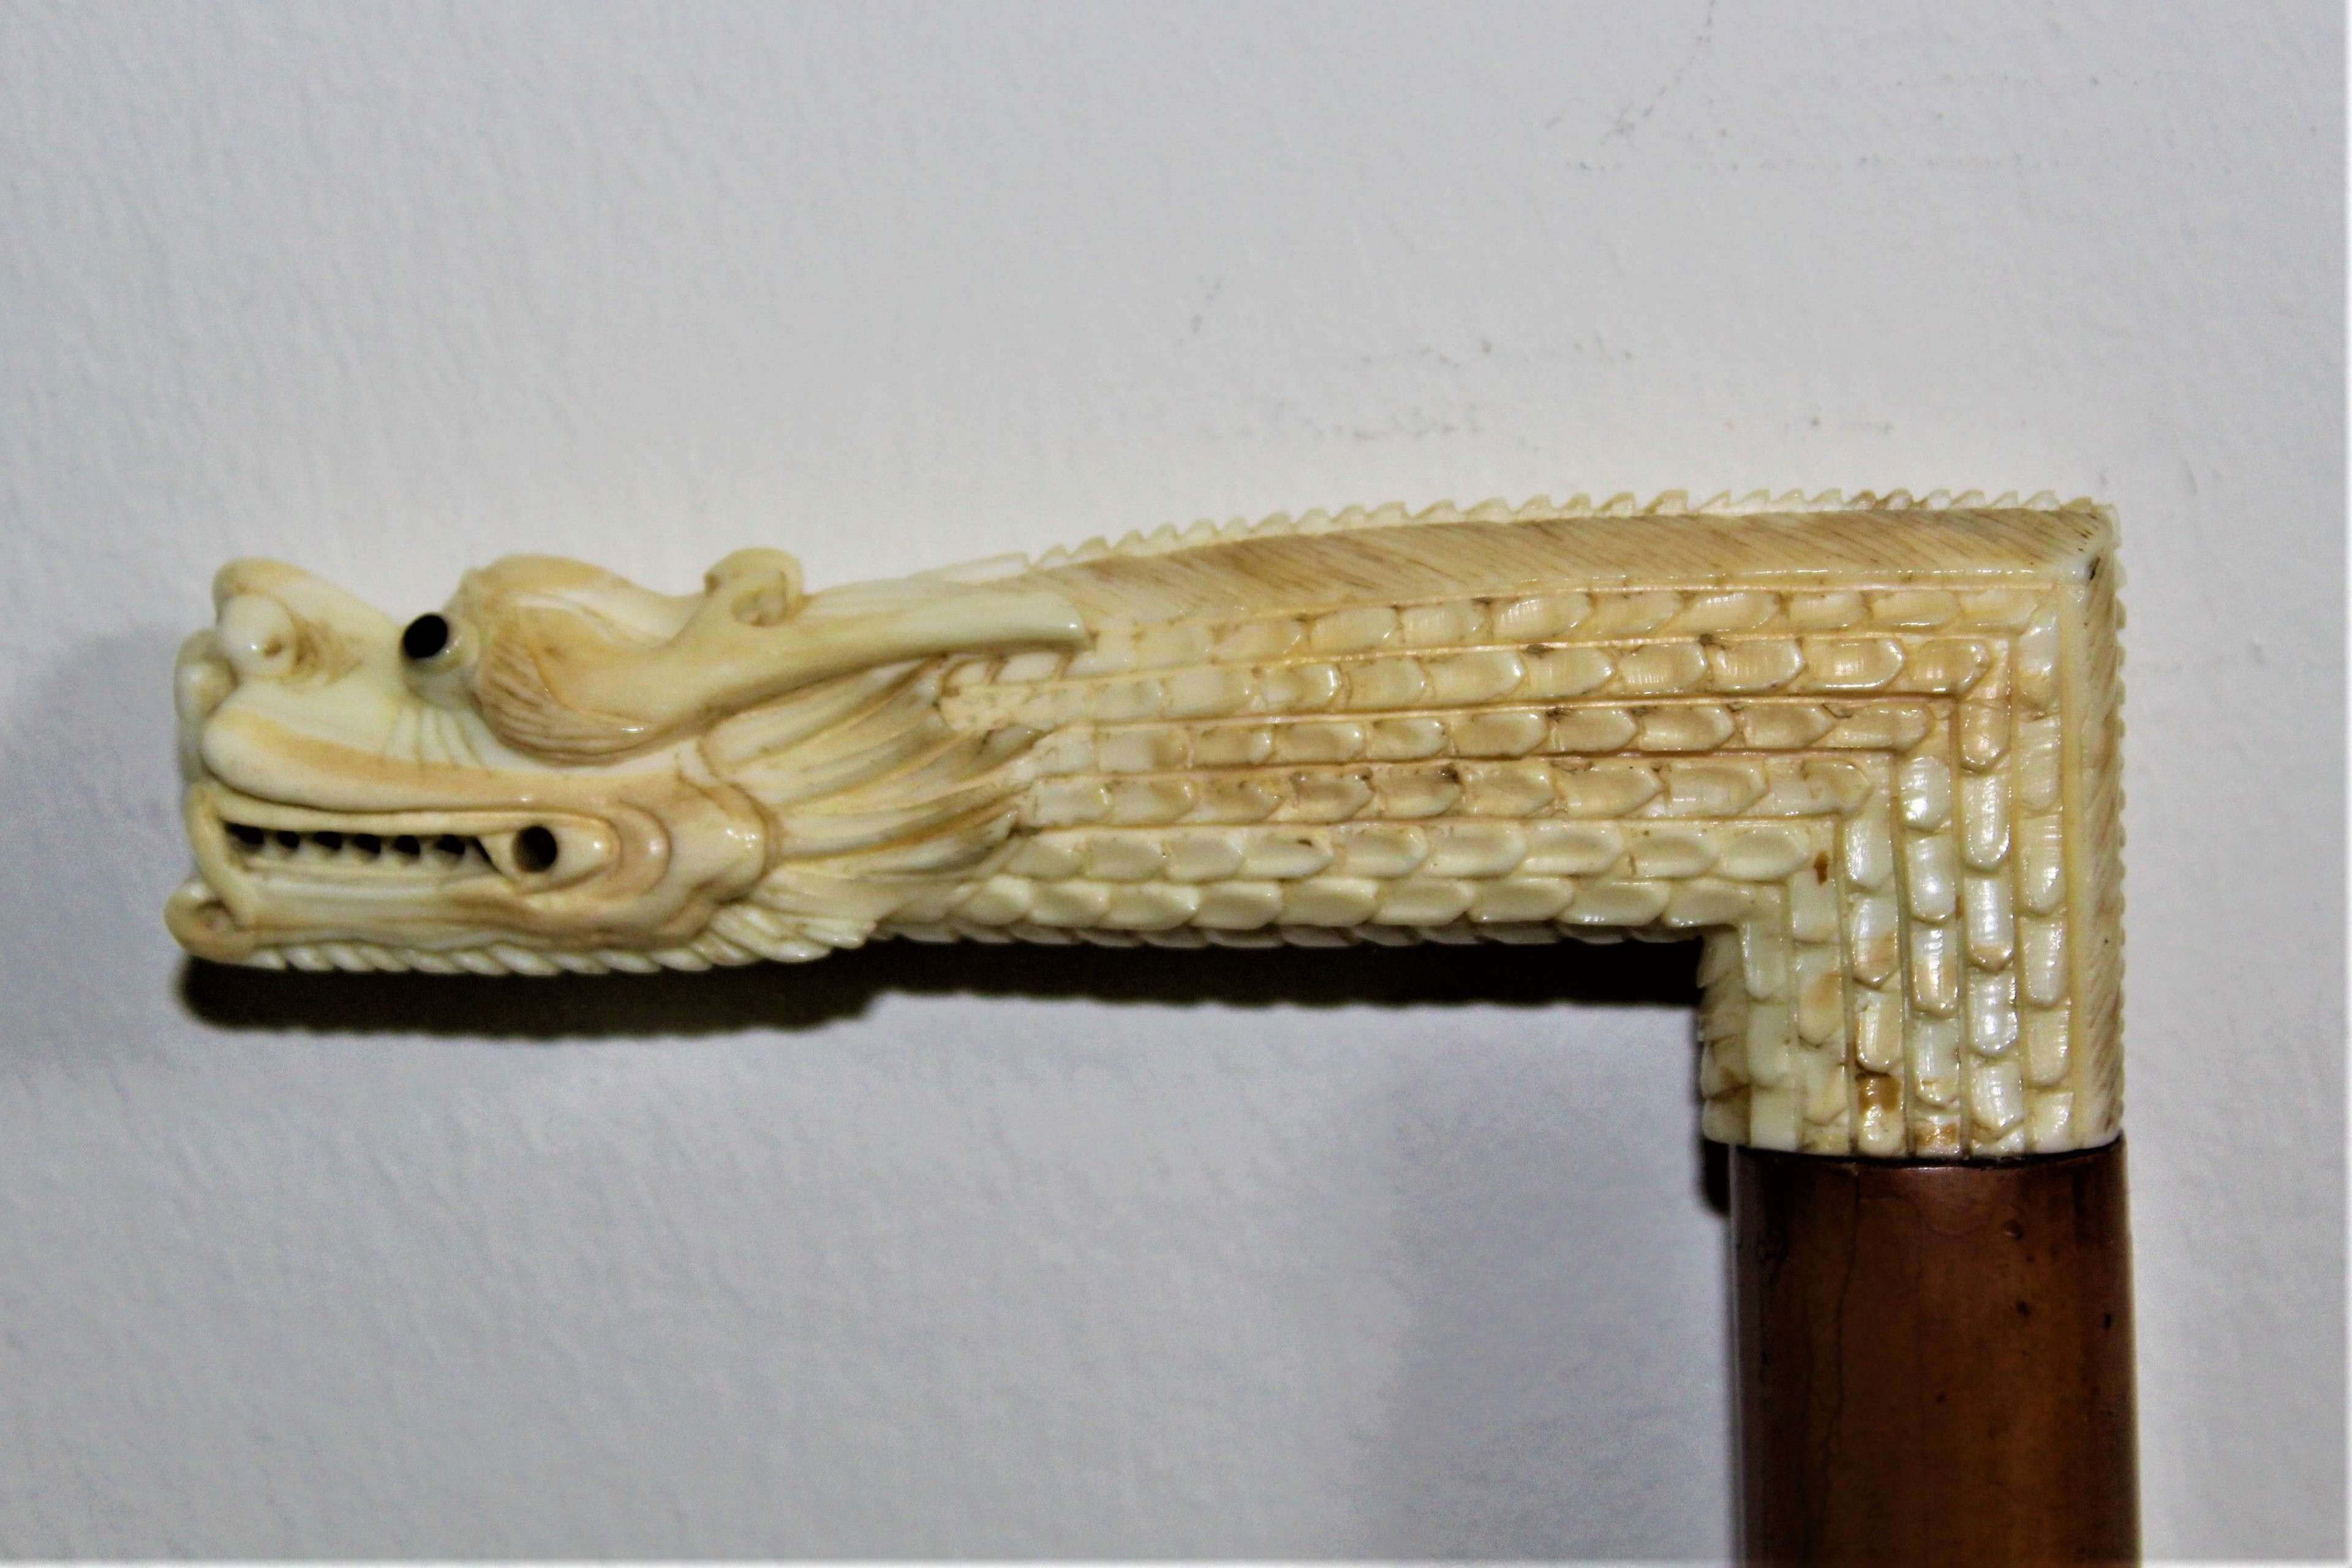 A very fine walking stick with an intricately carved top of a dragon